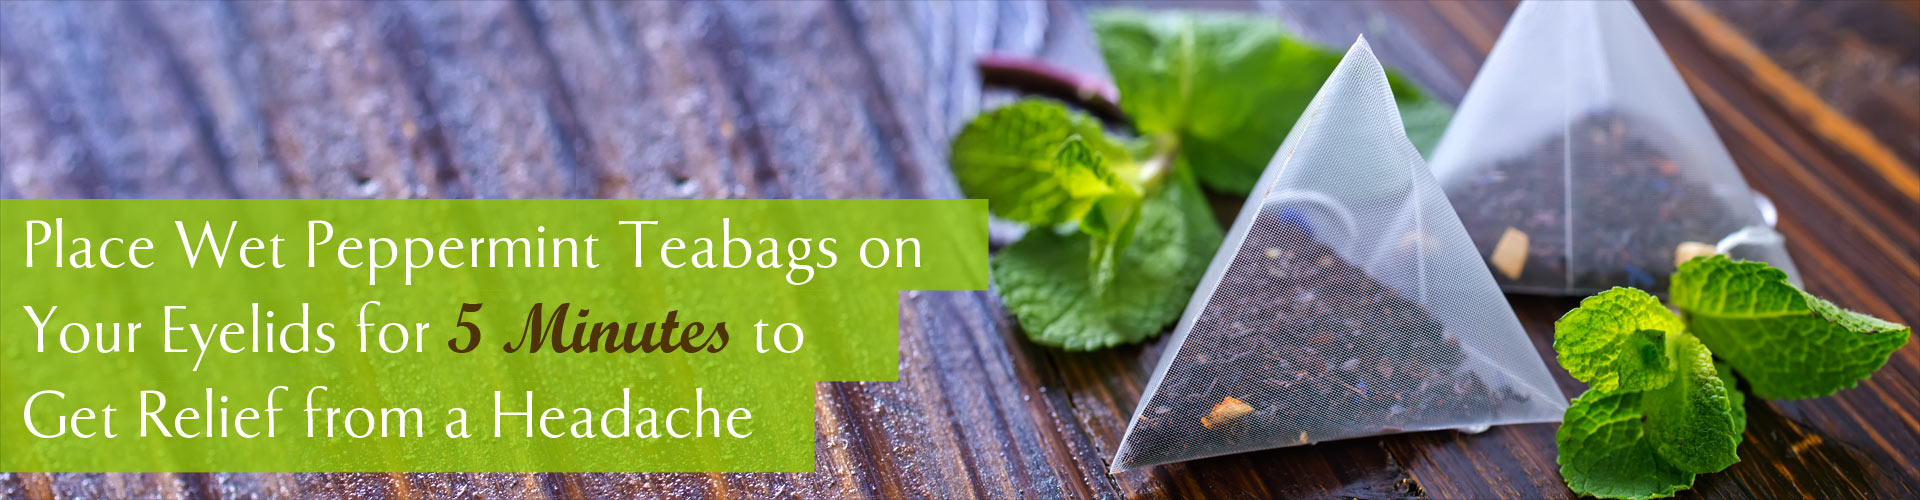 Place Wet Peppermint Teabags on Your Eyelids for 5 Minutes to Get Relief from a Headache